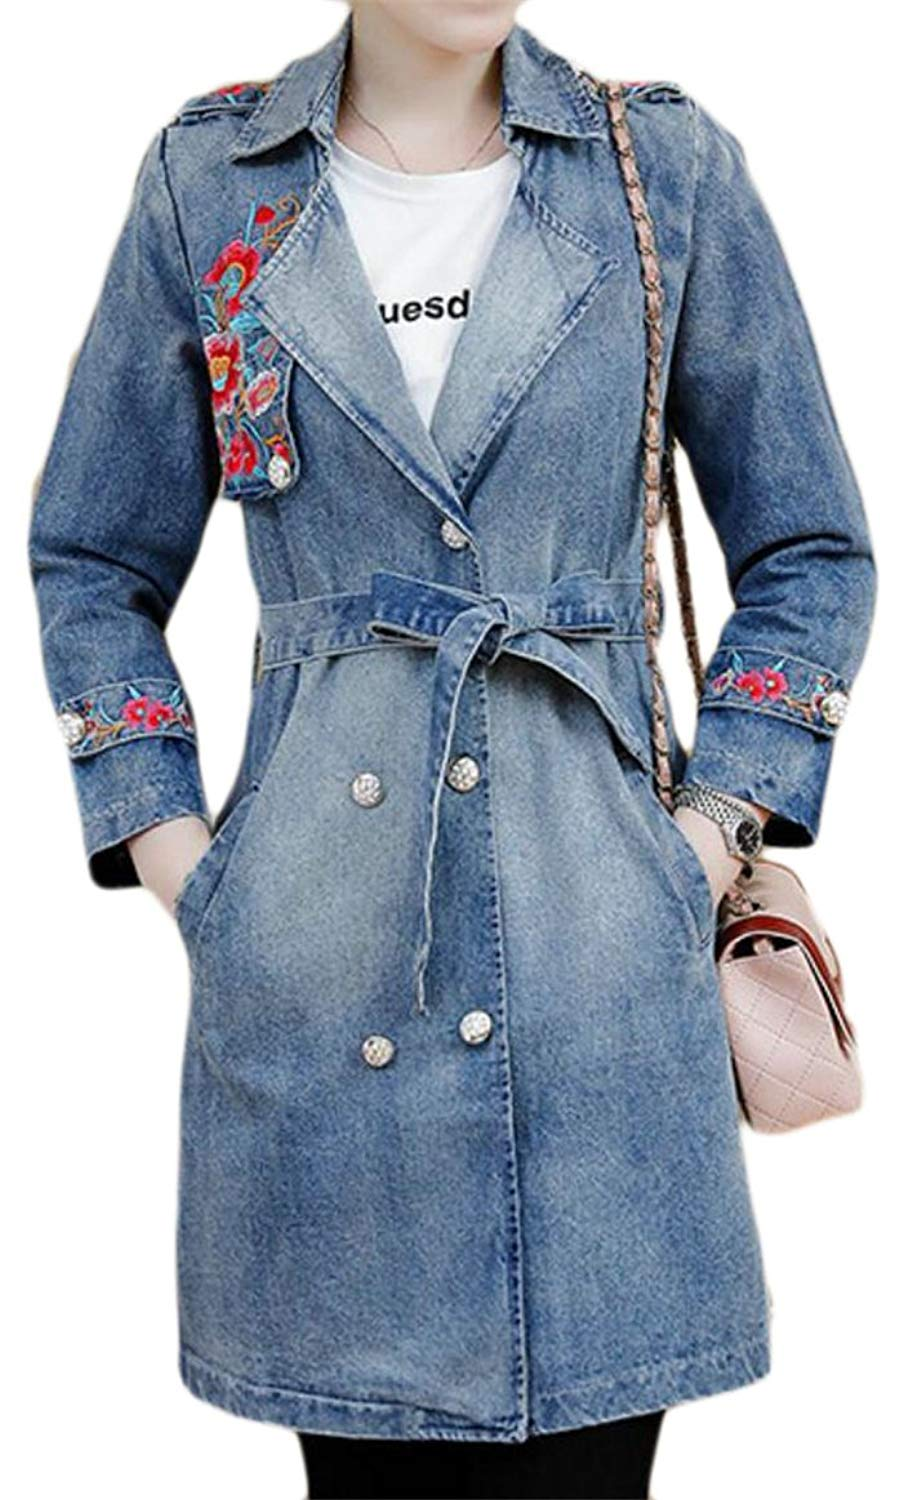 ONTBYB Womens Turn-Down Collar Double-Breasted Mid-Length Denim Jackets